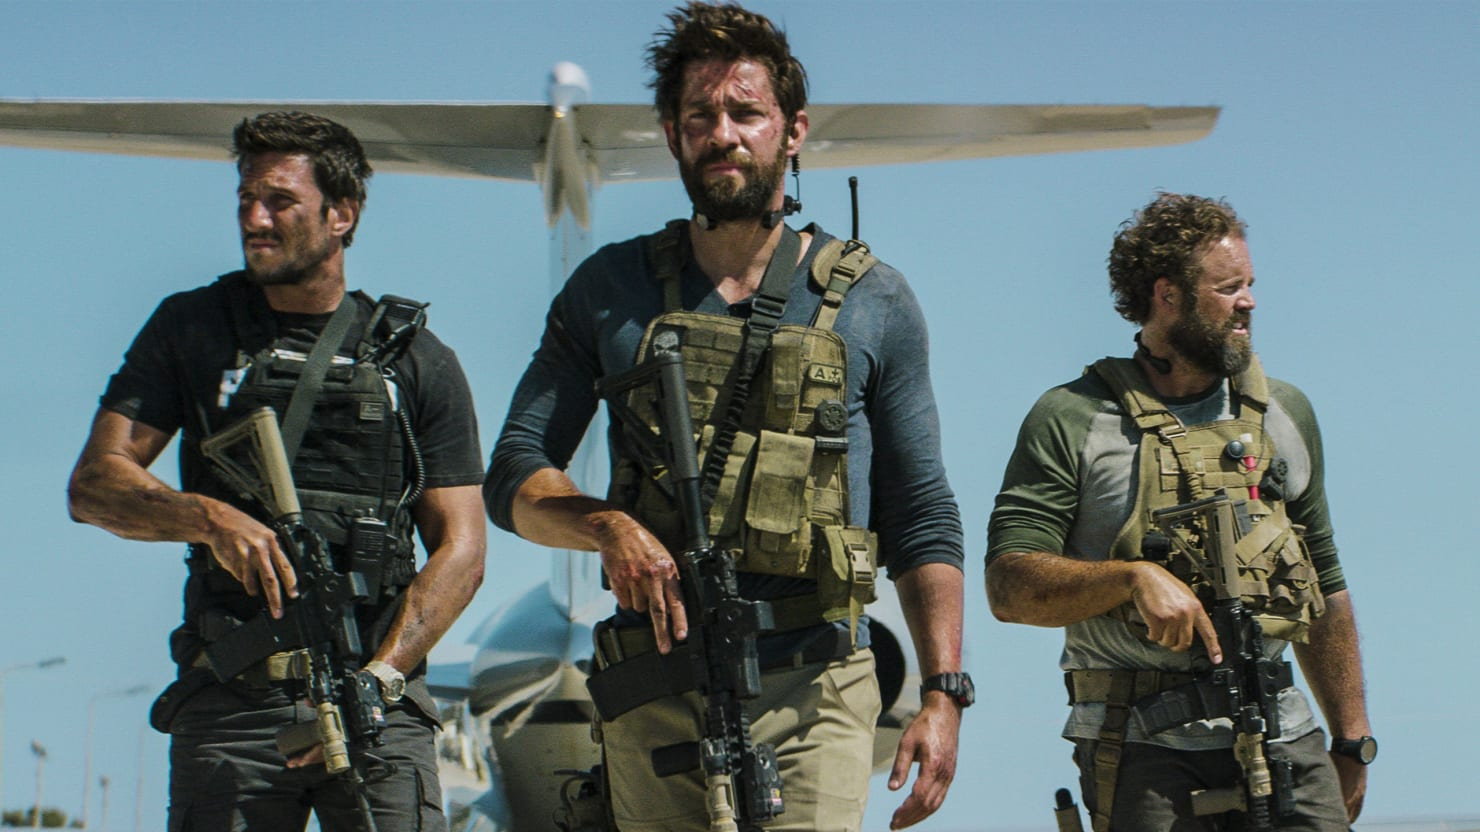 '13 Hours' Is Porn for Conspiracy Theorists